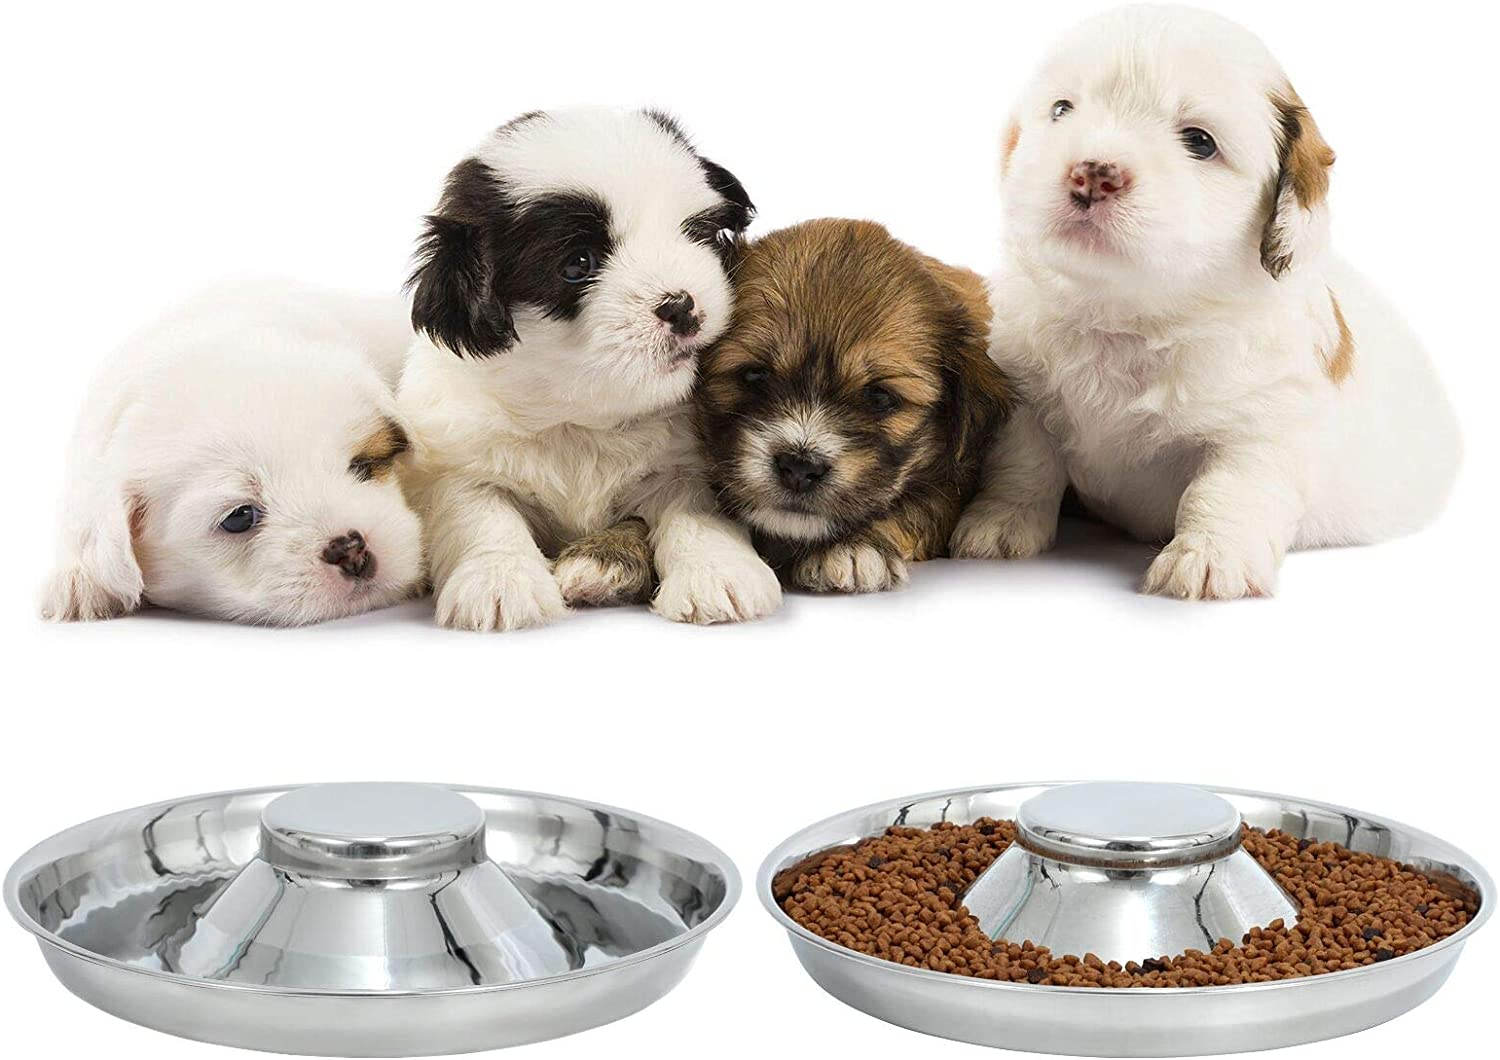 LEACOOLKEY Stainless Steel Dog Bowl-Puppy Feeder Food/Water Bowl-Puppy Feeding Bowls for Litters-Pet Feeder Bowl Whelping/Weaning Dishes Feeder for Small/Medium/Large Dogs Ste of 2